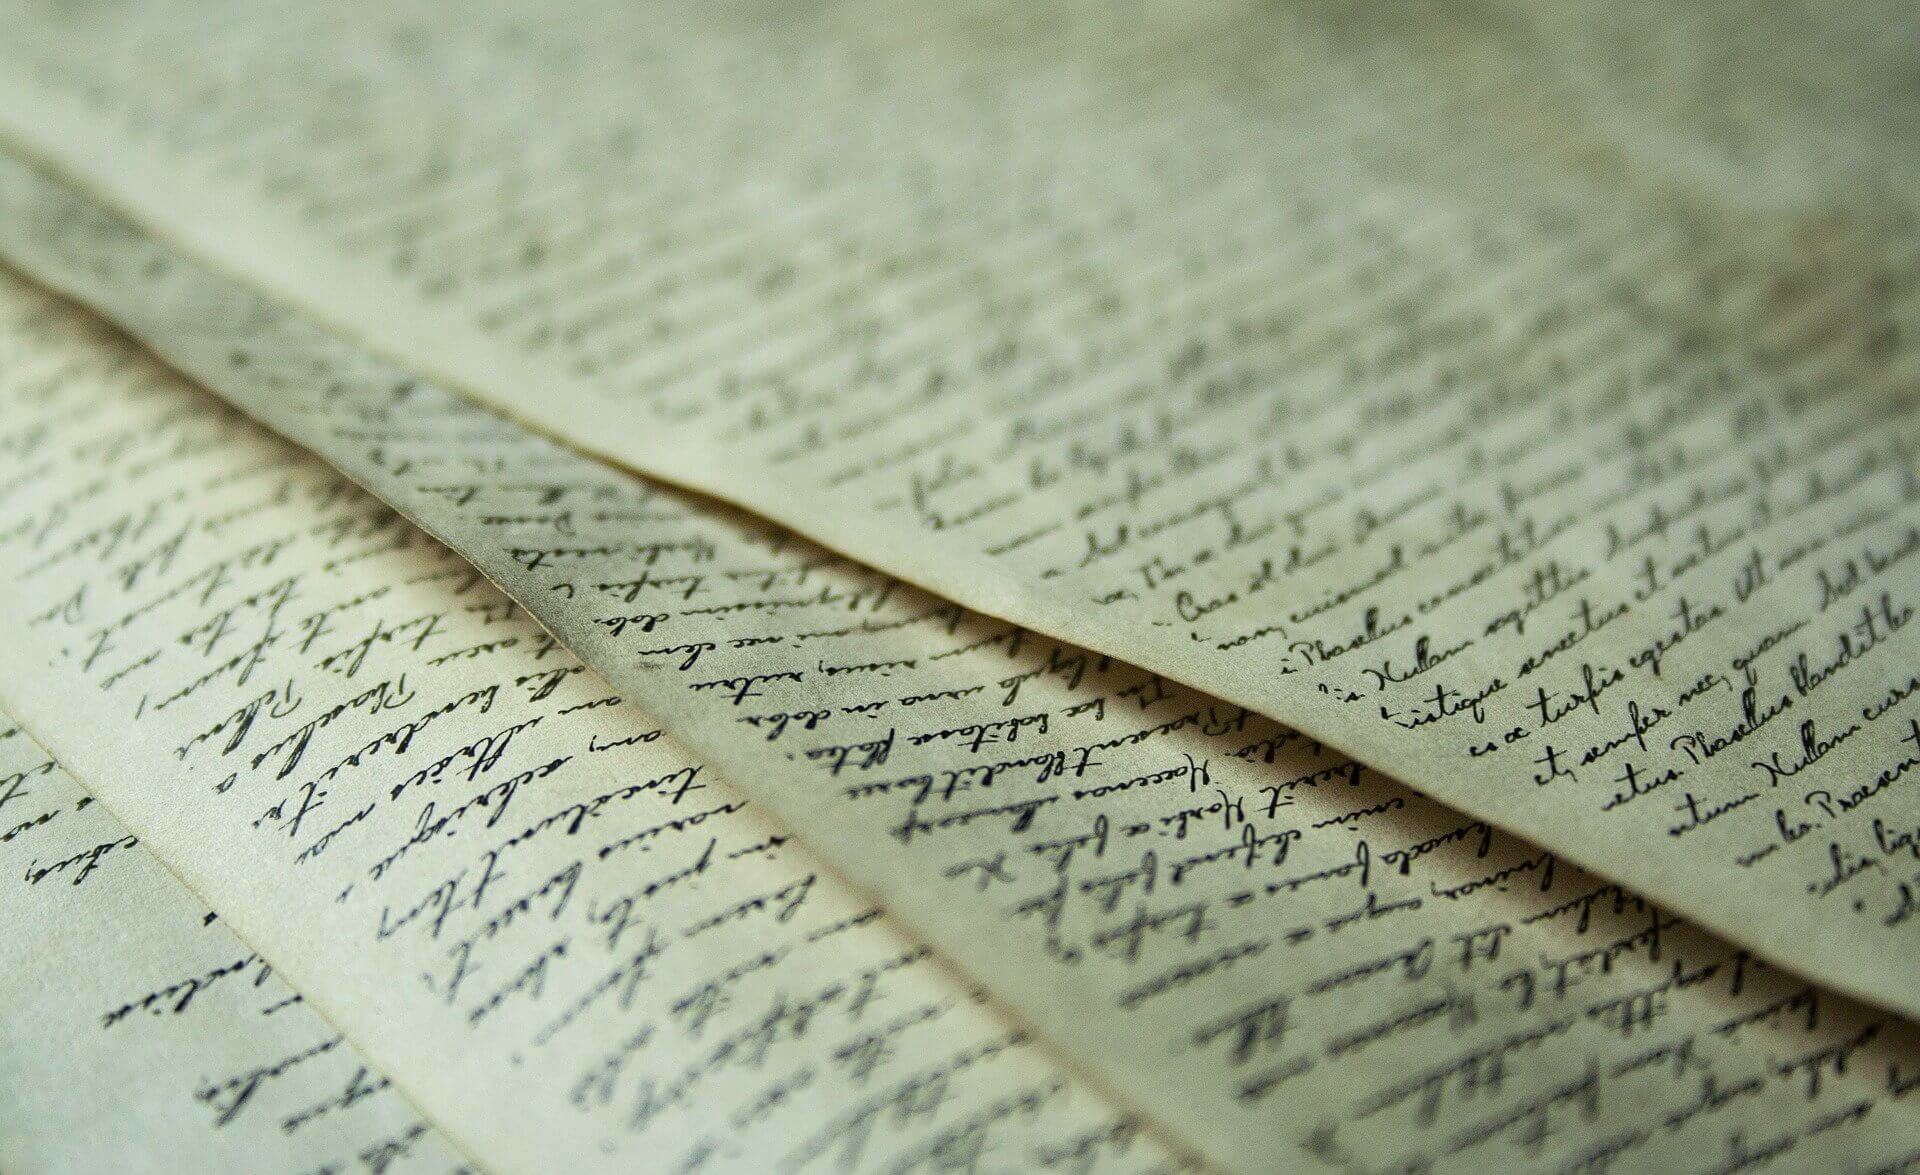 Handwritten documents